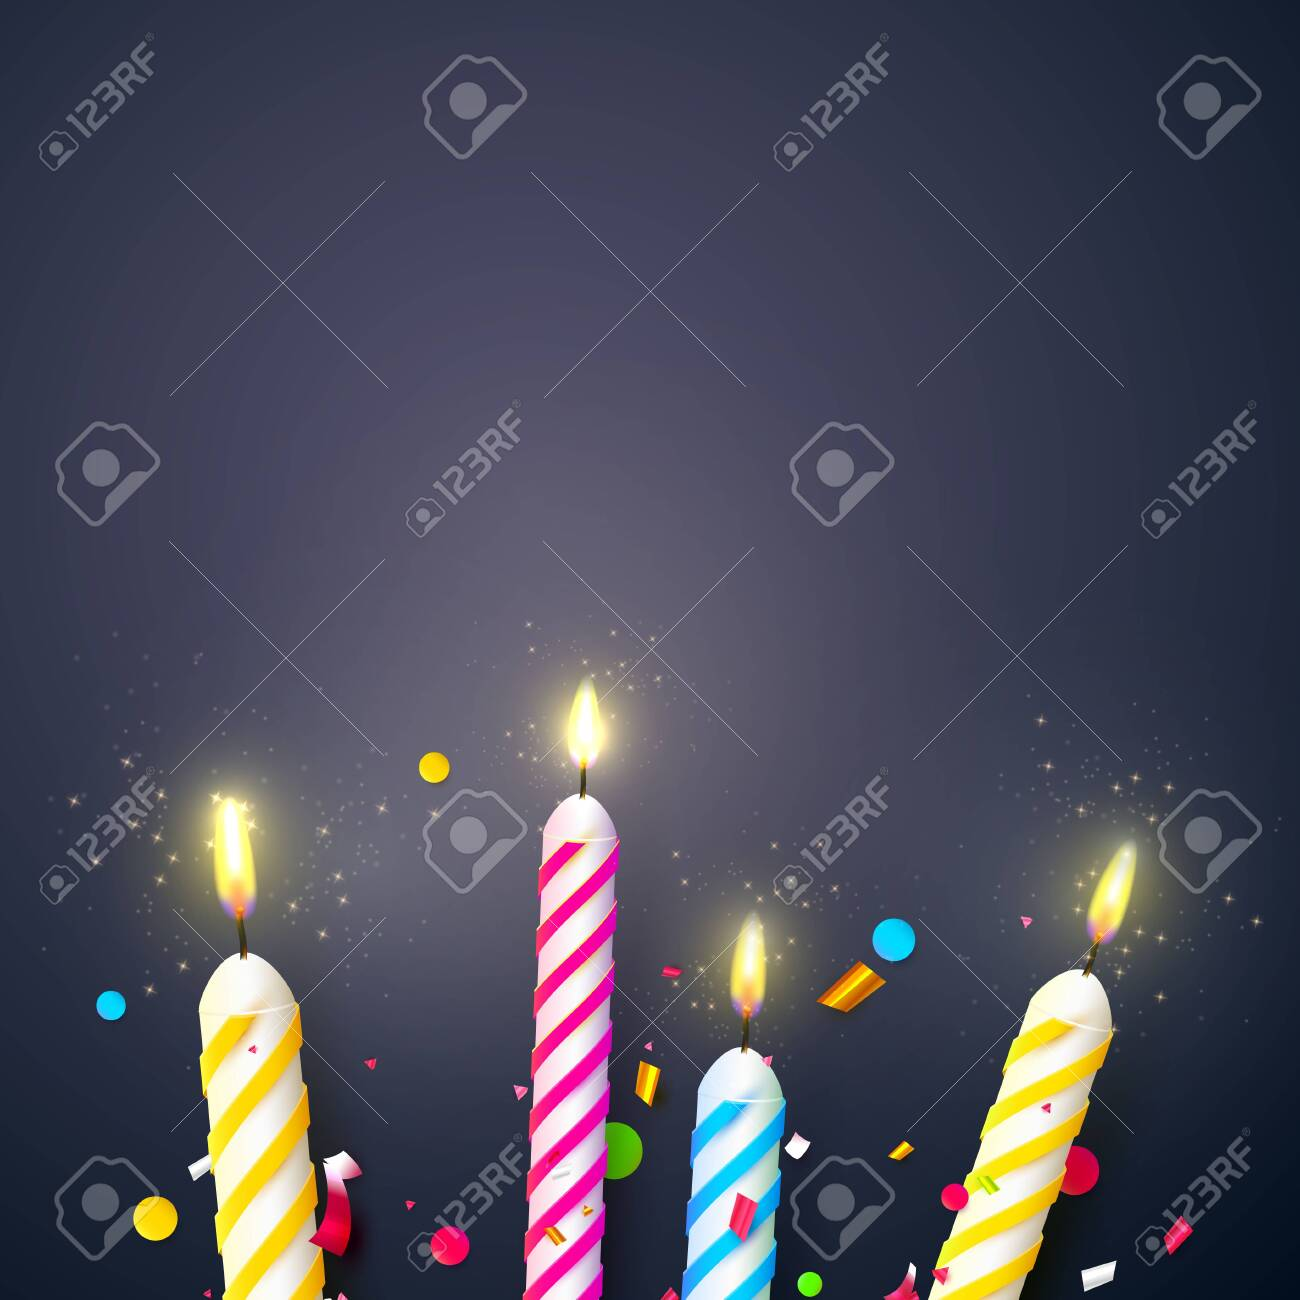 Colorful Sparkling Candles On Dark Background Birthday Anniversary Or Celebration Template Stock Vector